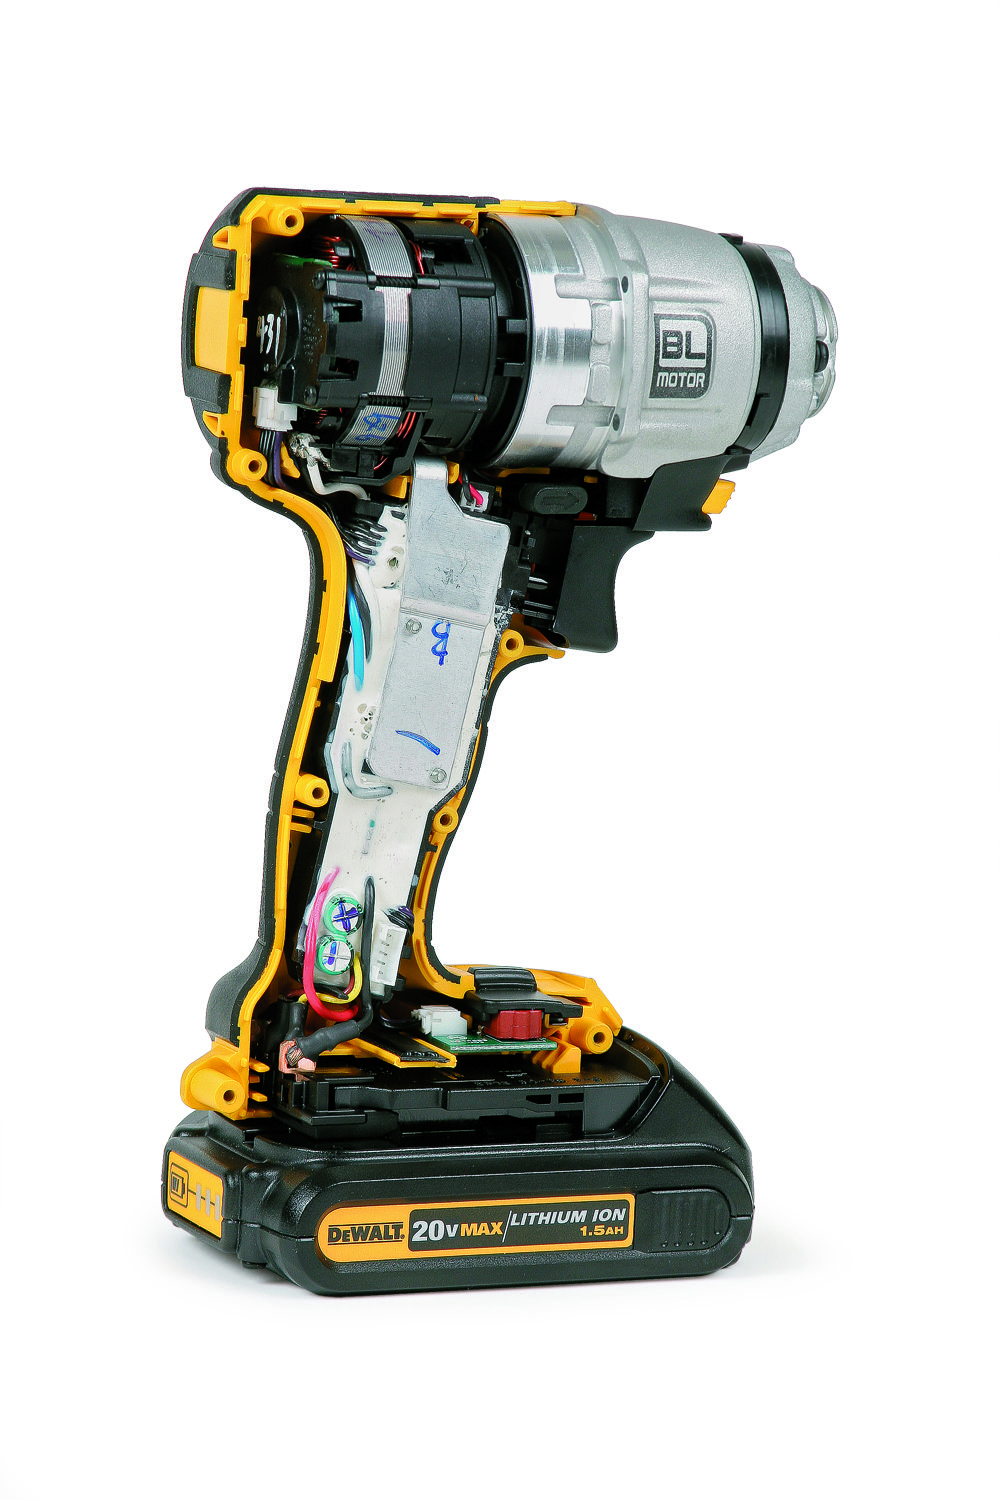 Best Cordless Drill Reviews Cordless Drill Reviews Drill Cordless Drill